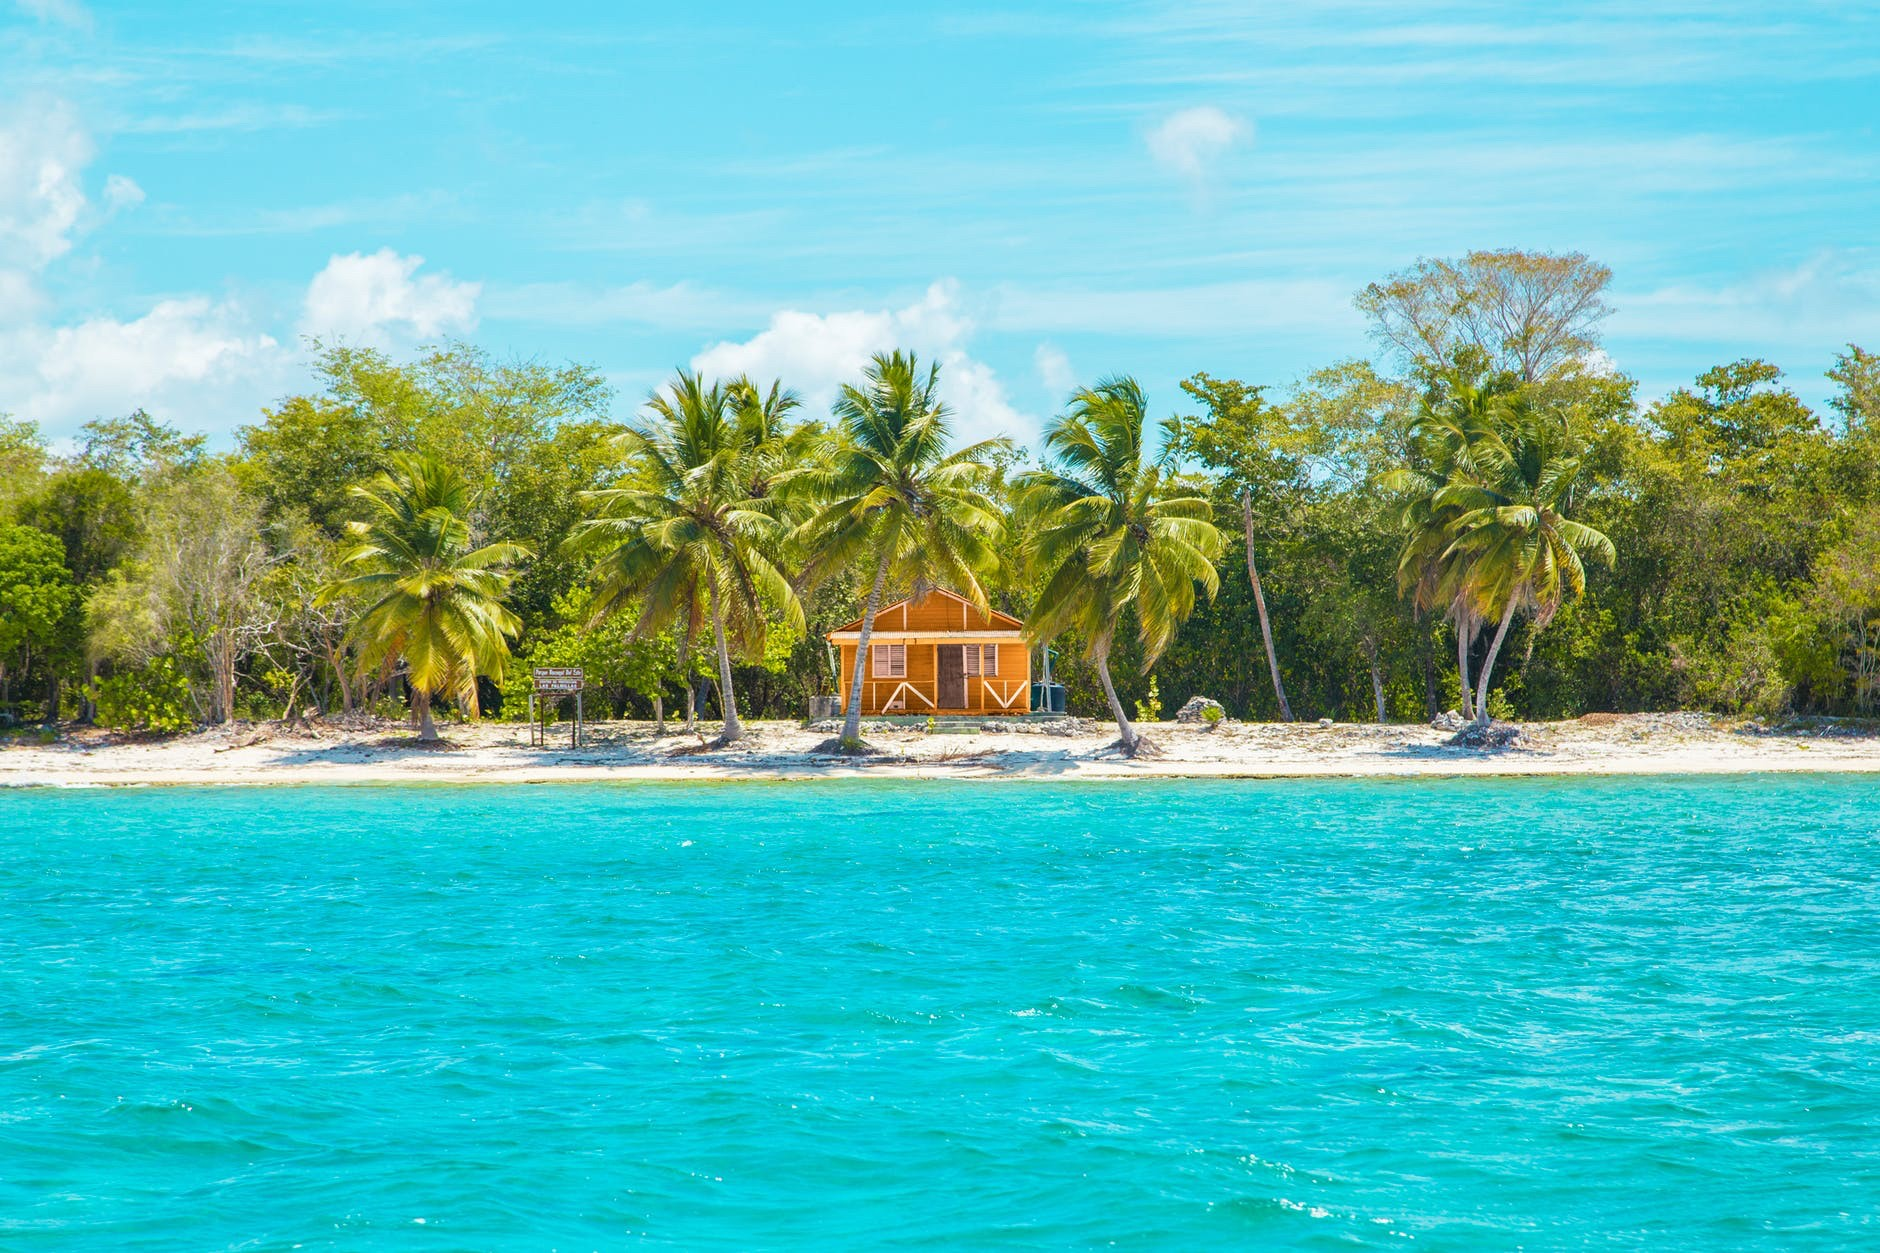 Flight Deal Round Trip From Los Angeles Area to Dominican Republic #losangeles #dominicanrepublic #usholiday #christmasday